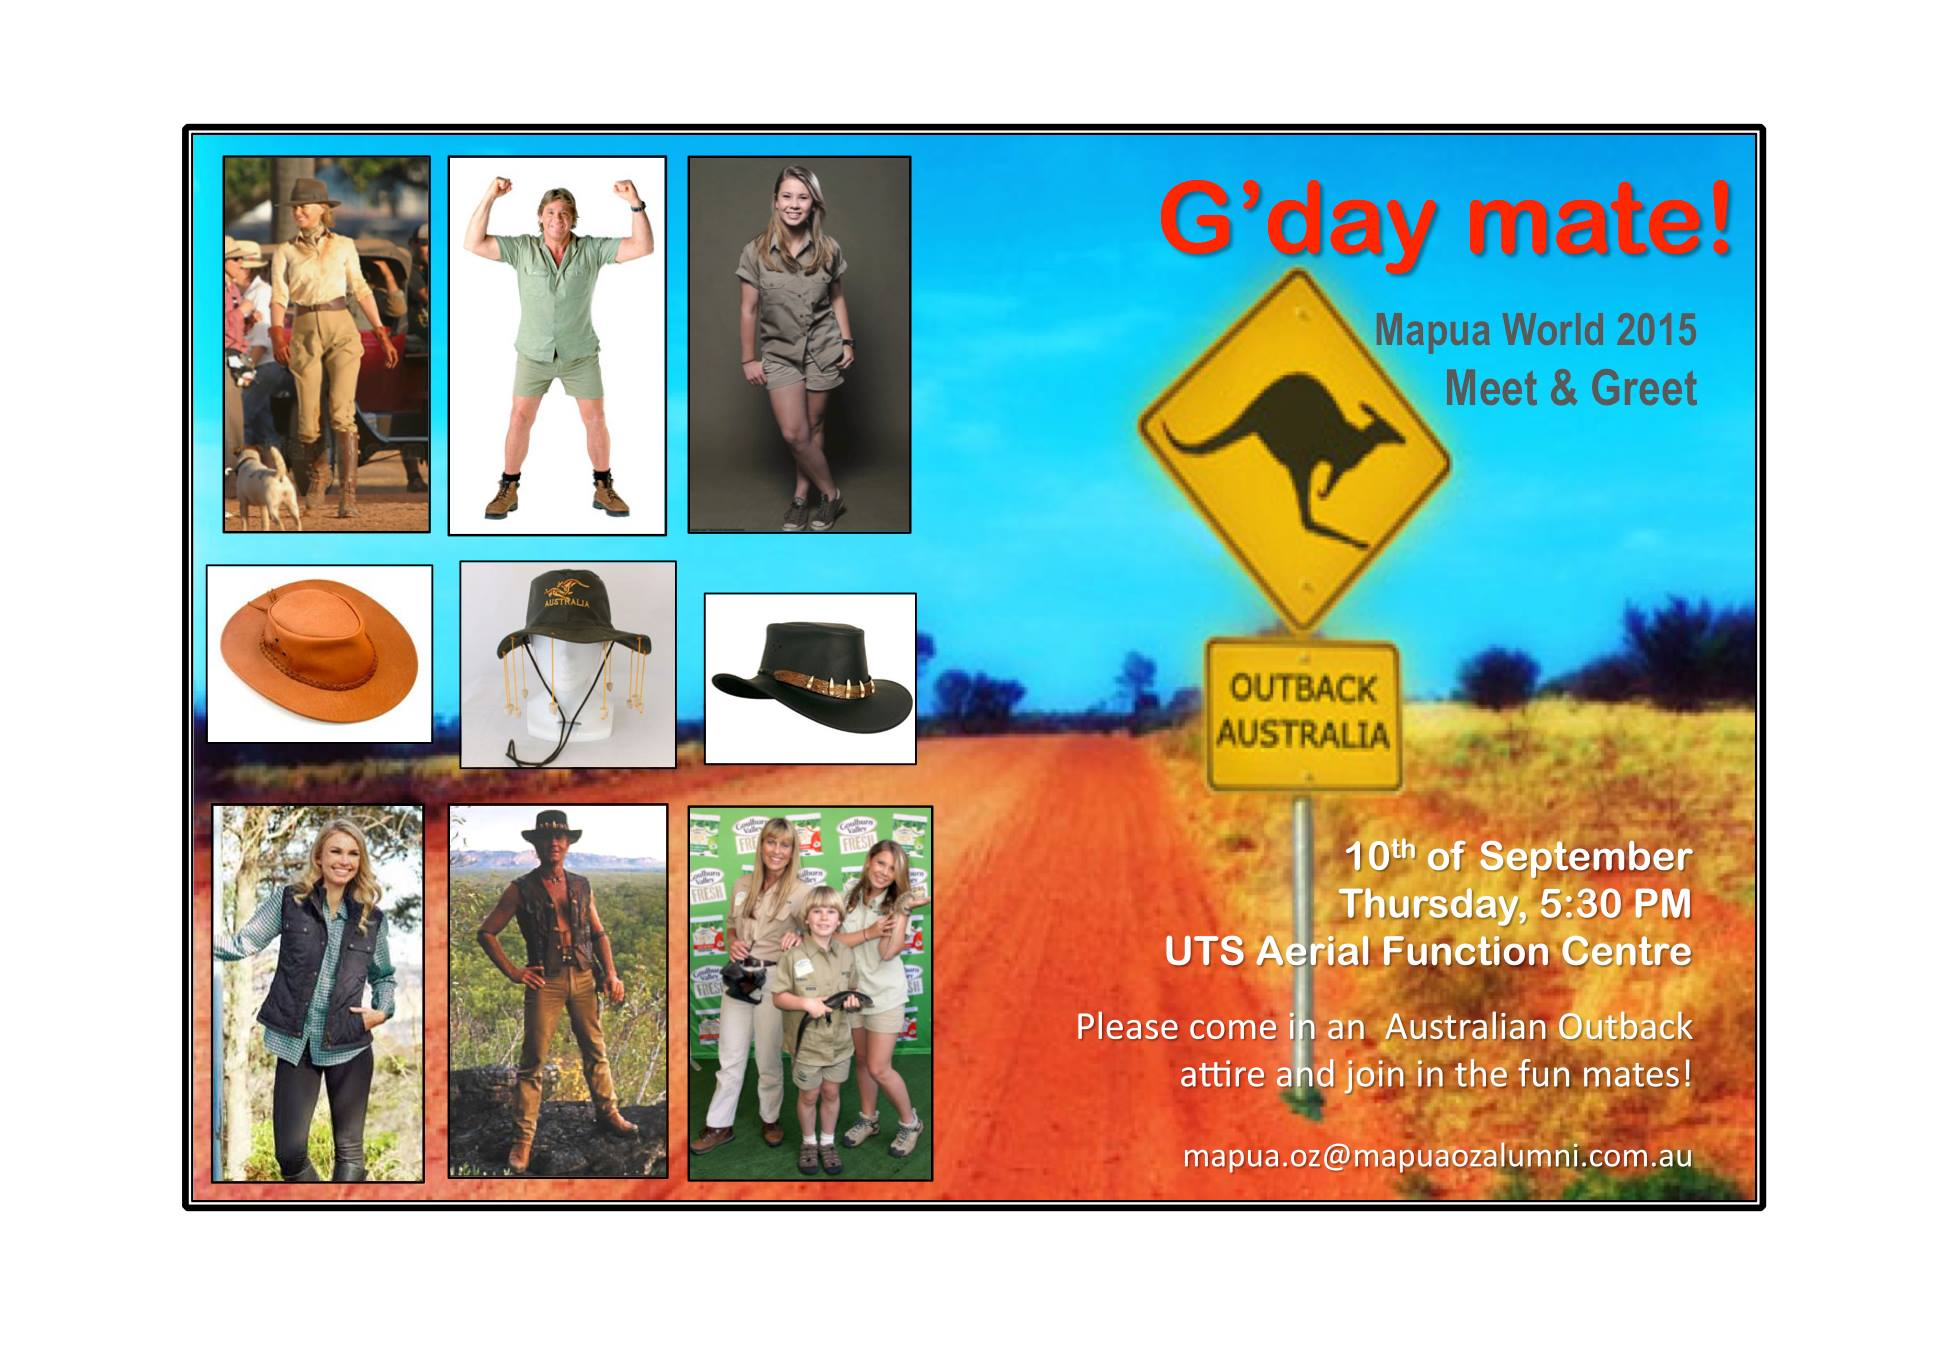 Theme gala night theme lets go to the races australian racing carnival fashionable vibrant elegant and fun about hats ties and head accessories we m4hsunfo